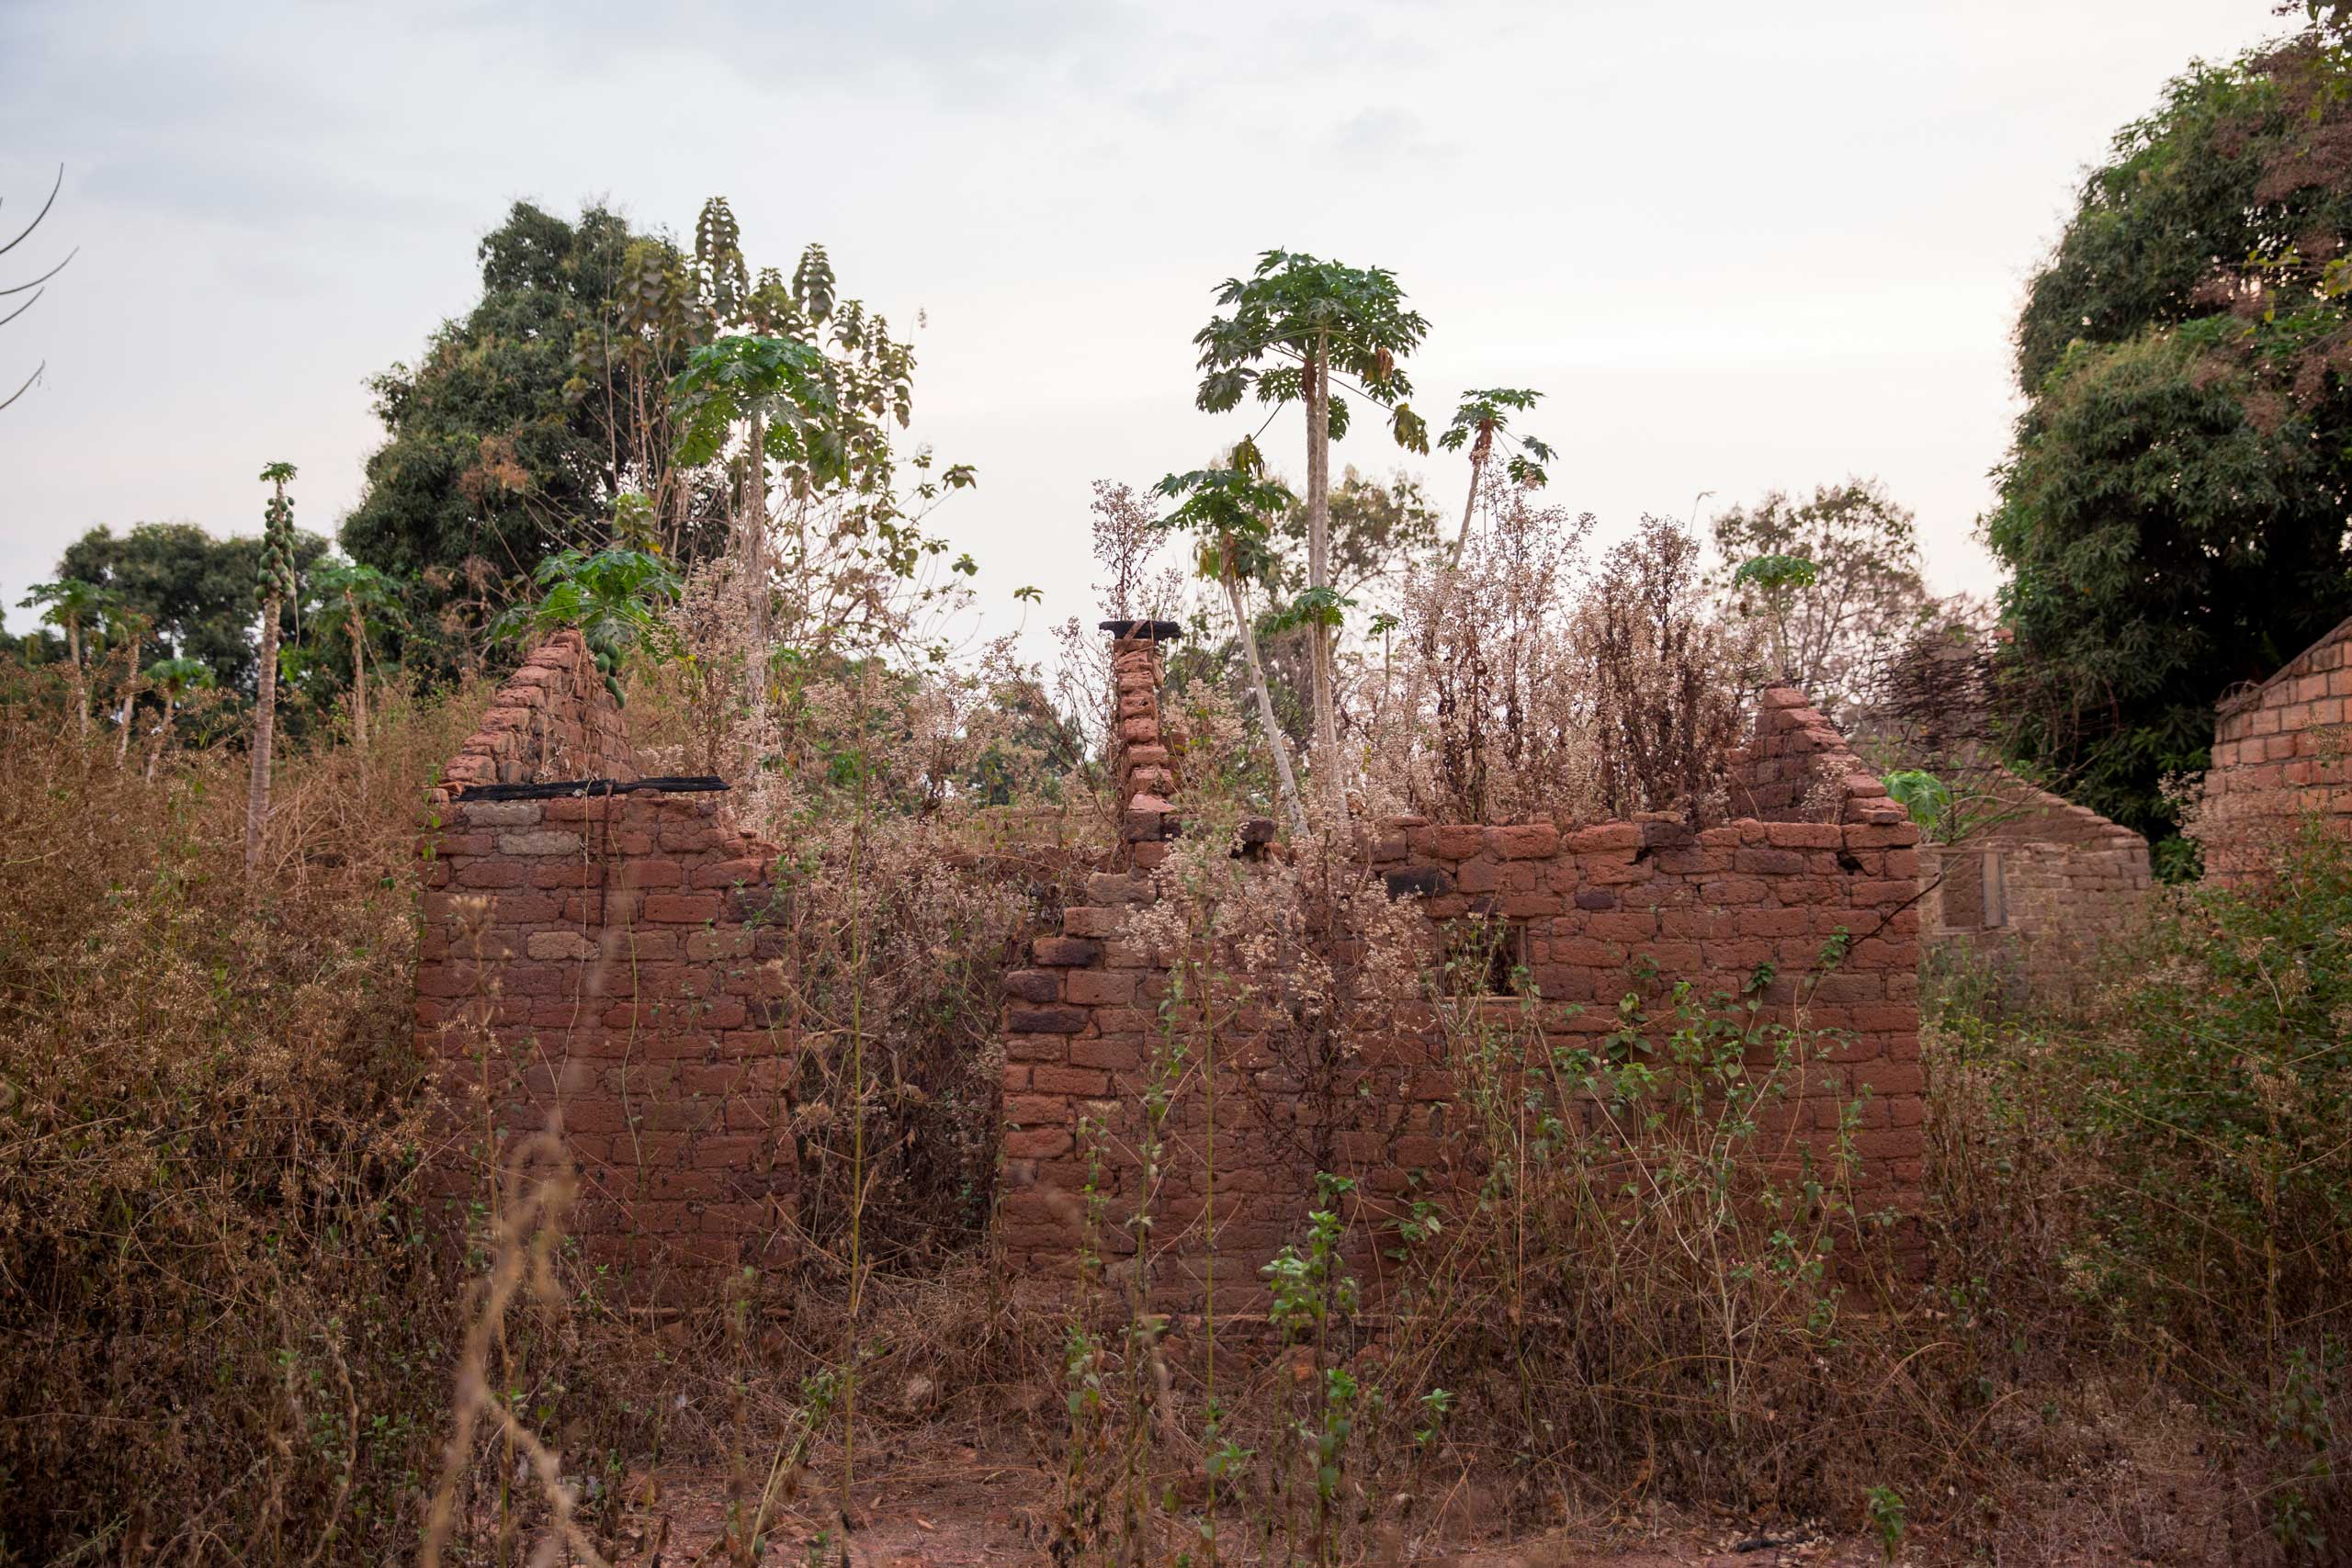 Around 500 houses belonging to Christians were burnt and abandoned in Bambari, Central African Republic, during two years of violence.